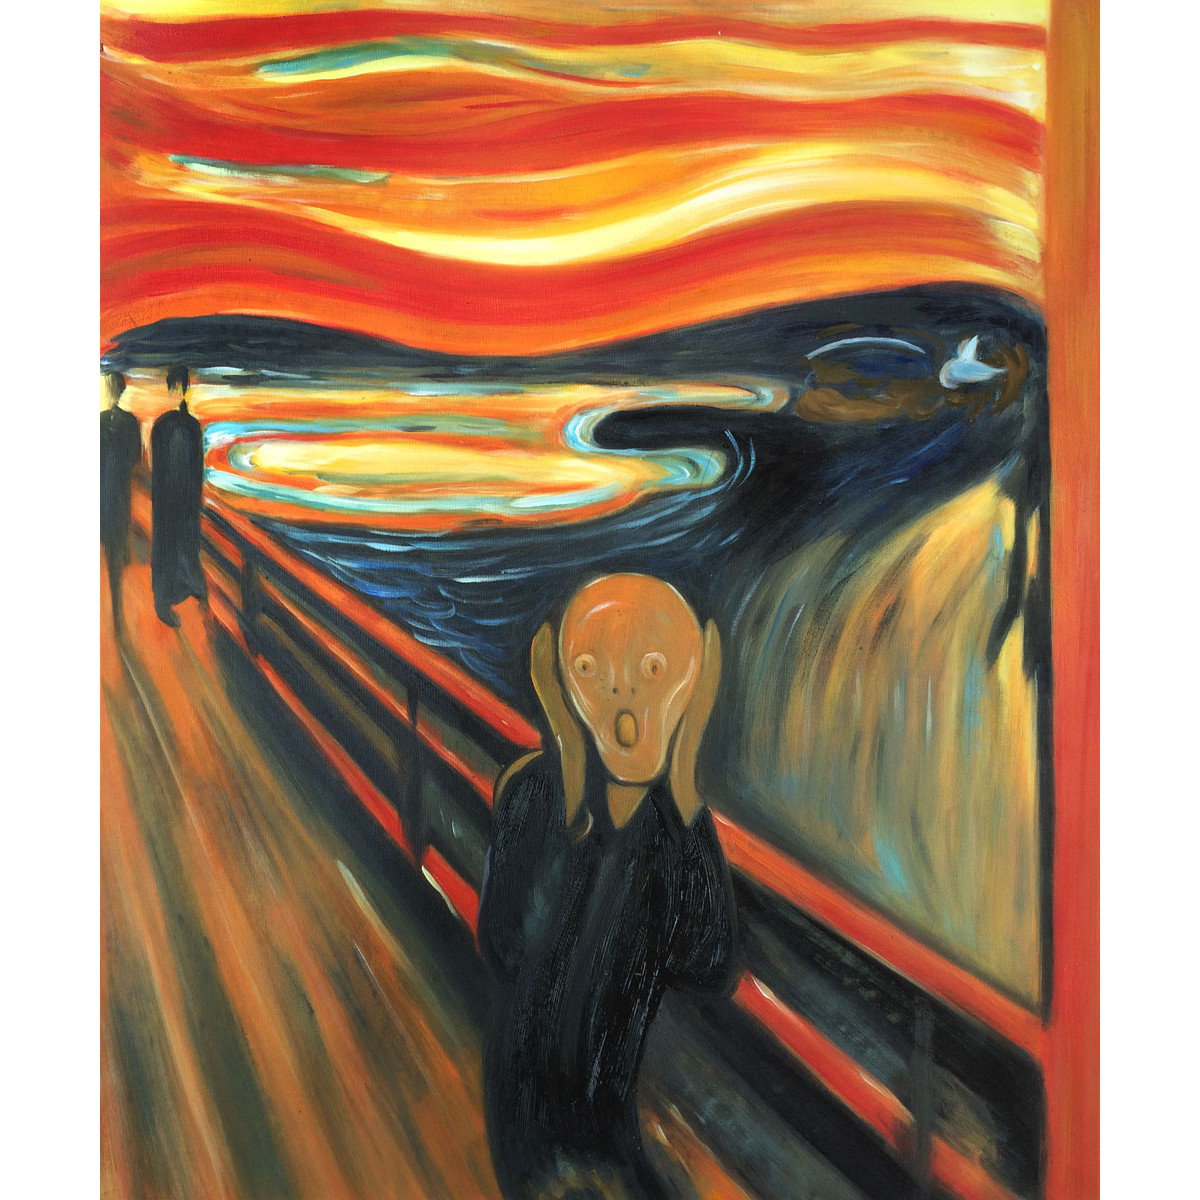 an analysis of edward munchs painting the scream Analysis: edvard munch and the scream updated on may 16, 2017 keely mahaffey more this paper will cover the effects edvard munch's life imposed on his art the scream by edvard munch: analysis, meaning and interpretation of the painting.